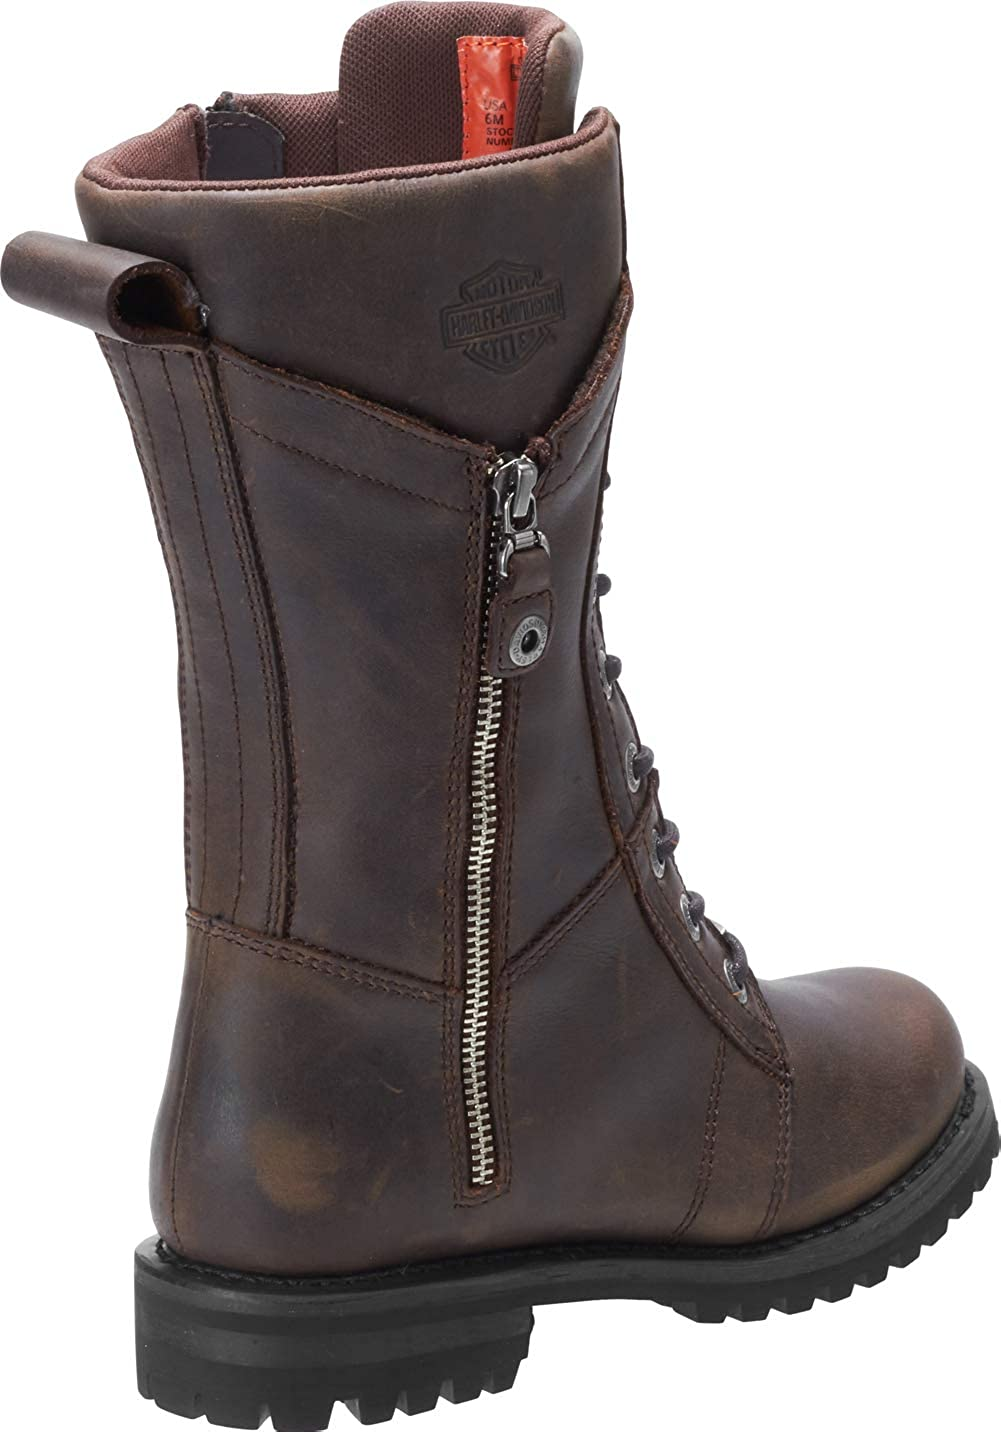 Harley-Davidson Womens Harnett Riding Boot Boot